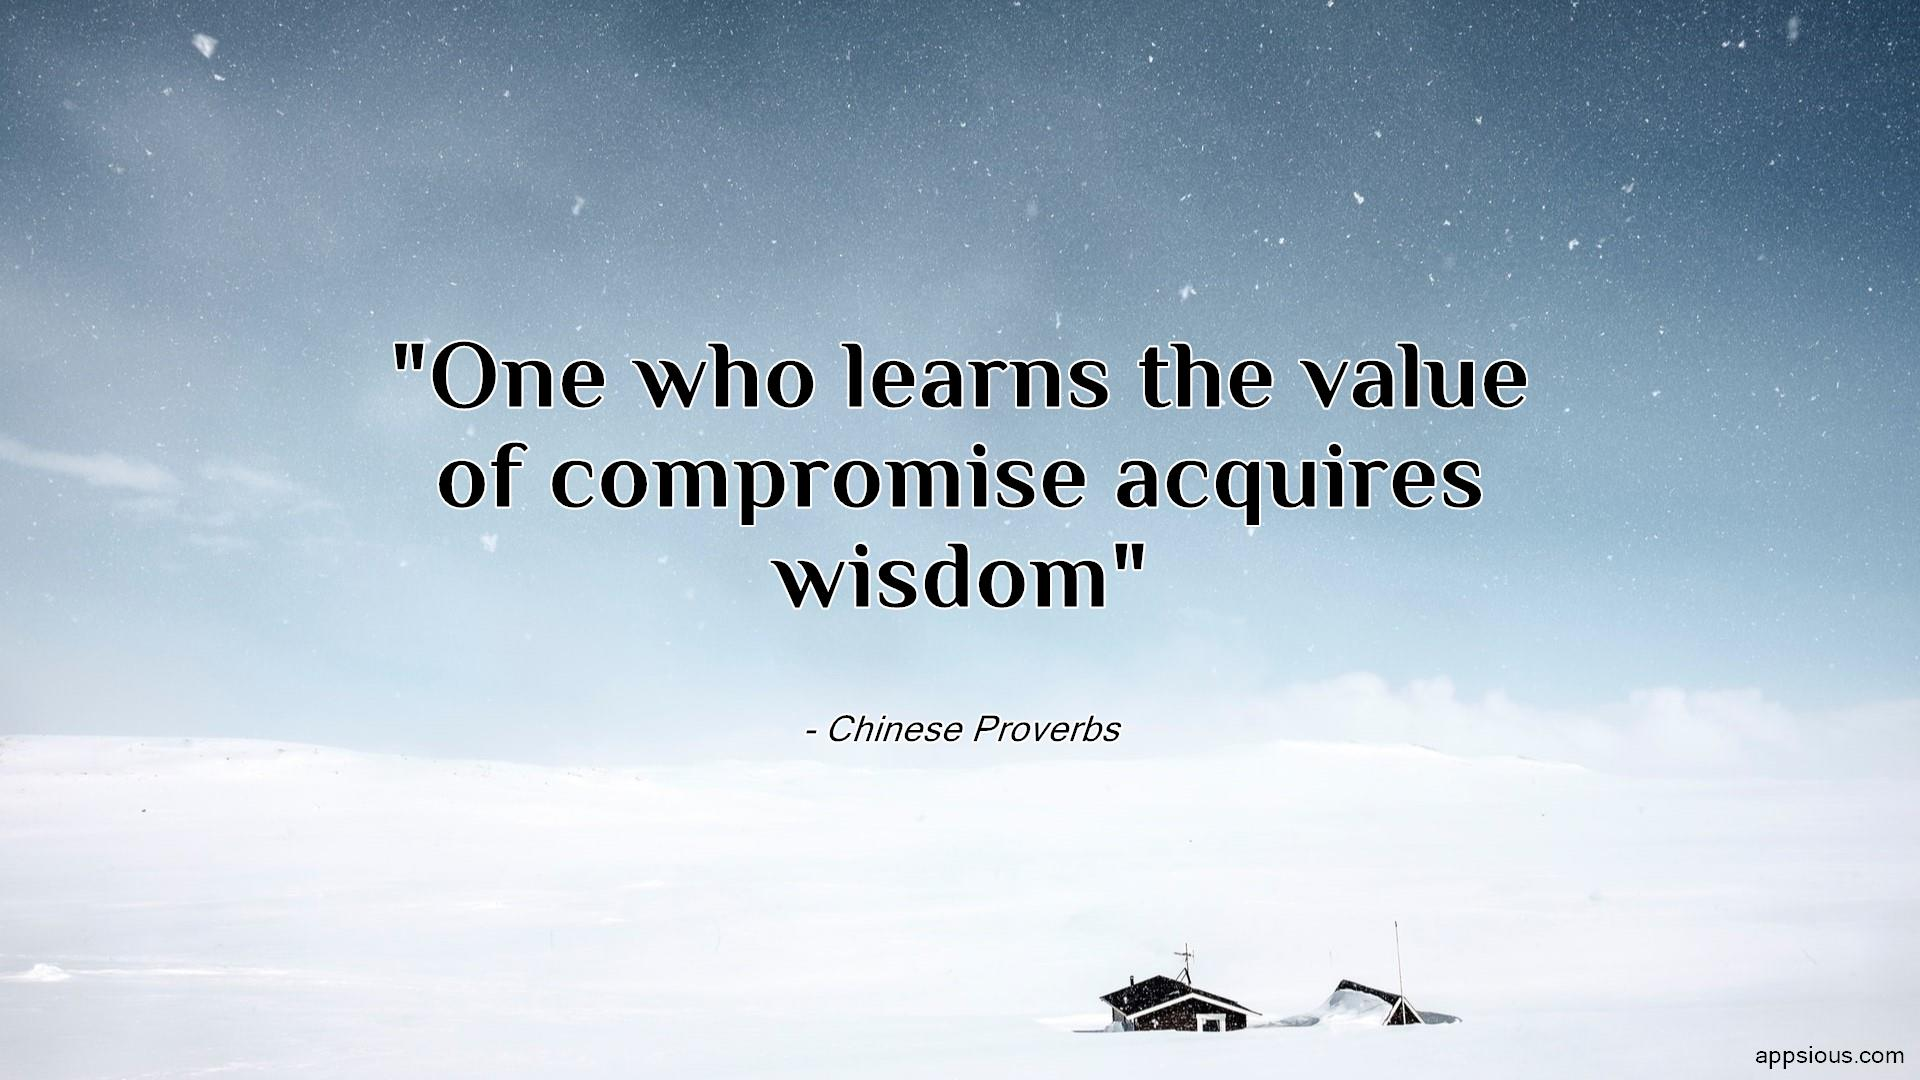 One who learns the value of compromise acquires wisdom